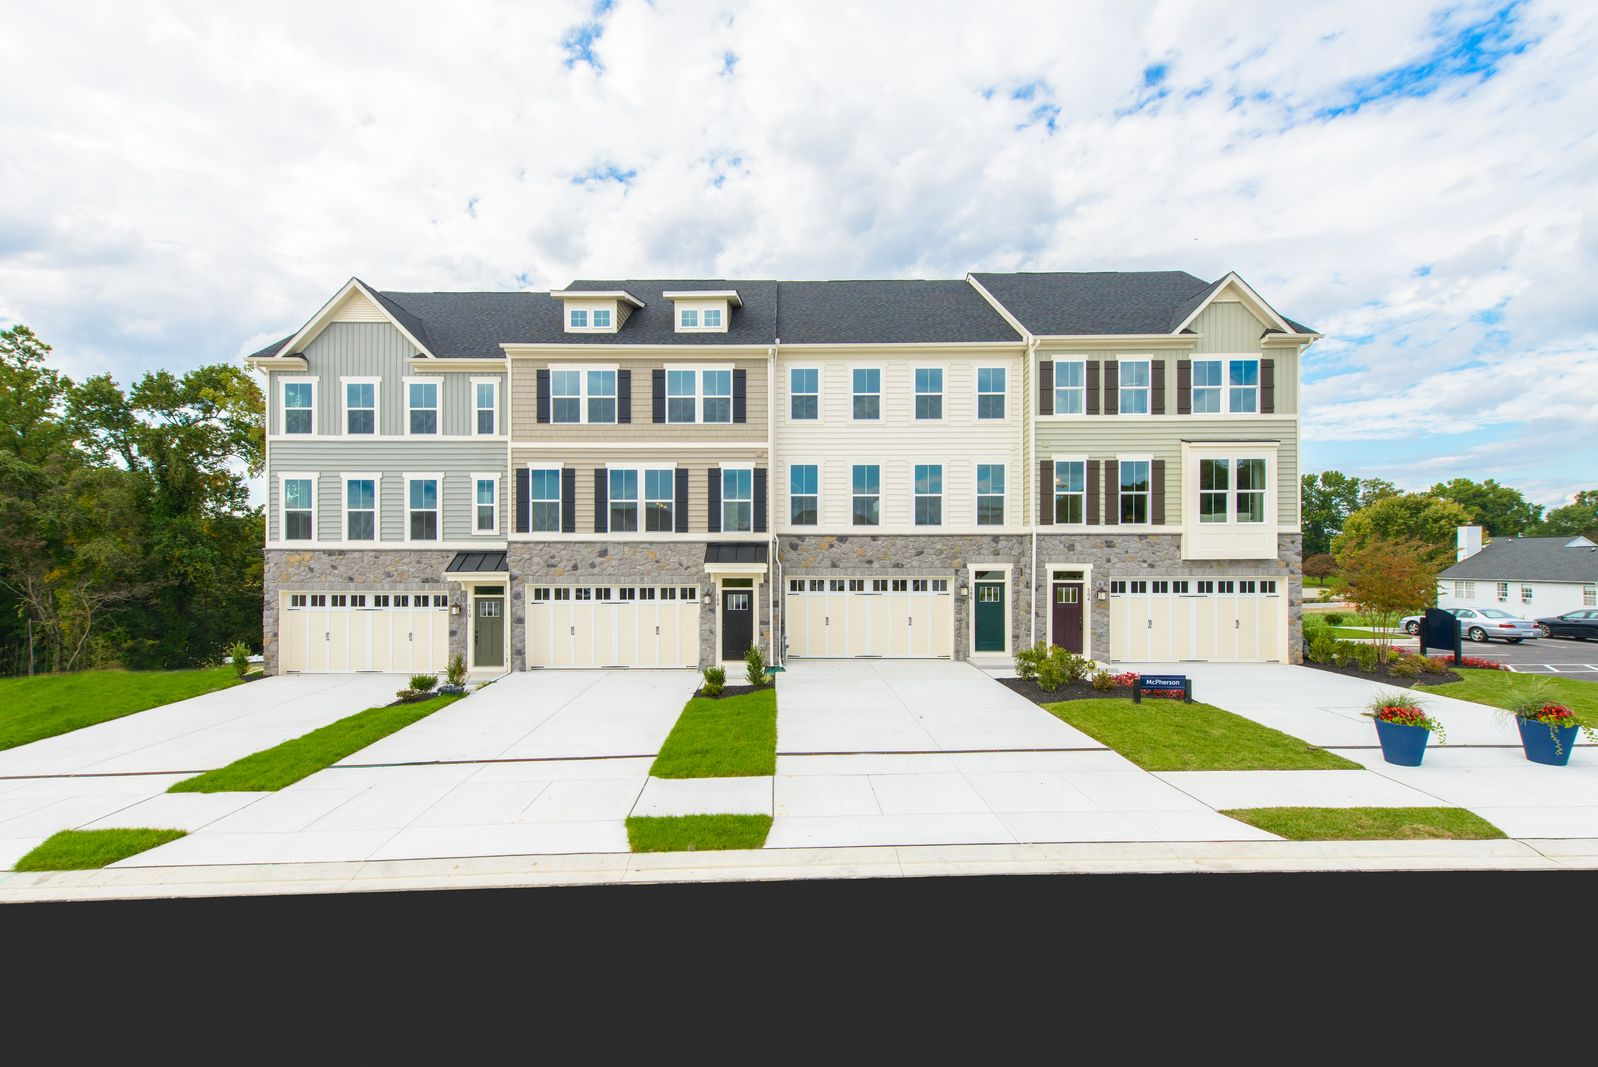 Photo of Magness Mill Townhomes in Bel Air, MD 21014